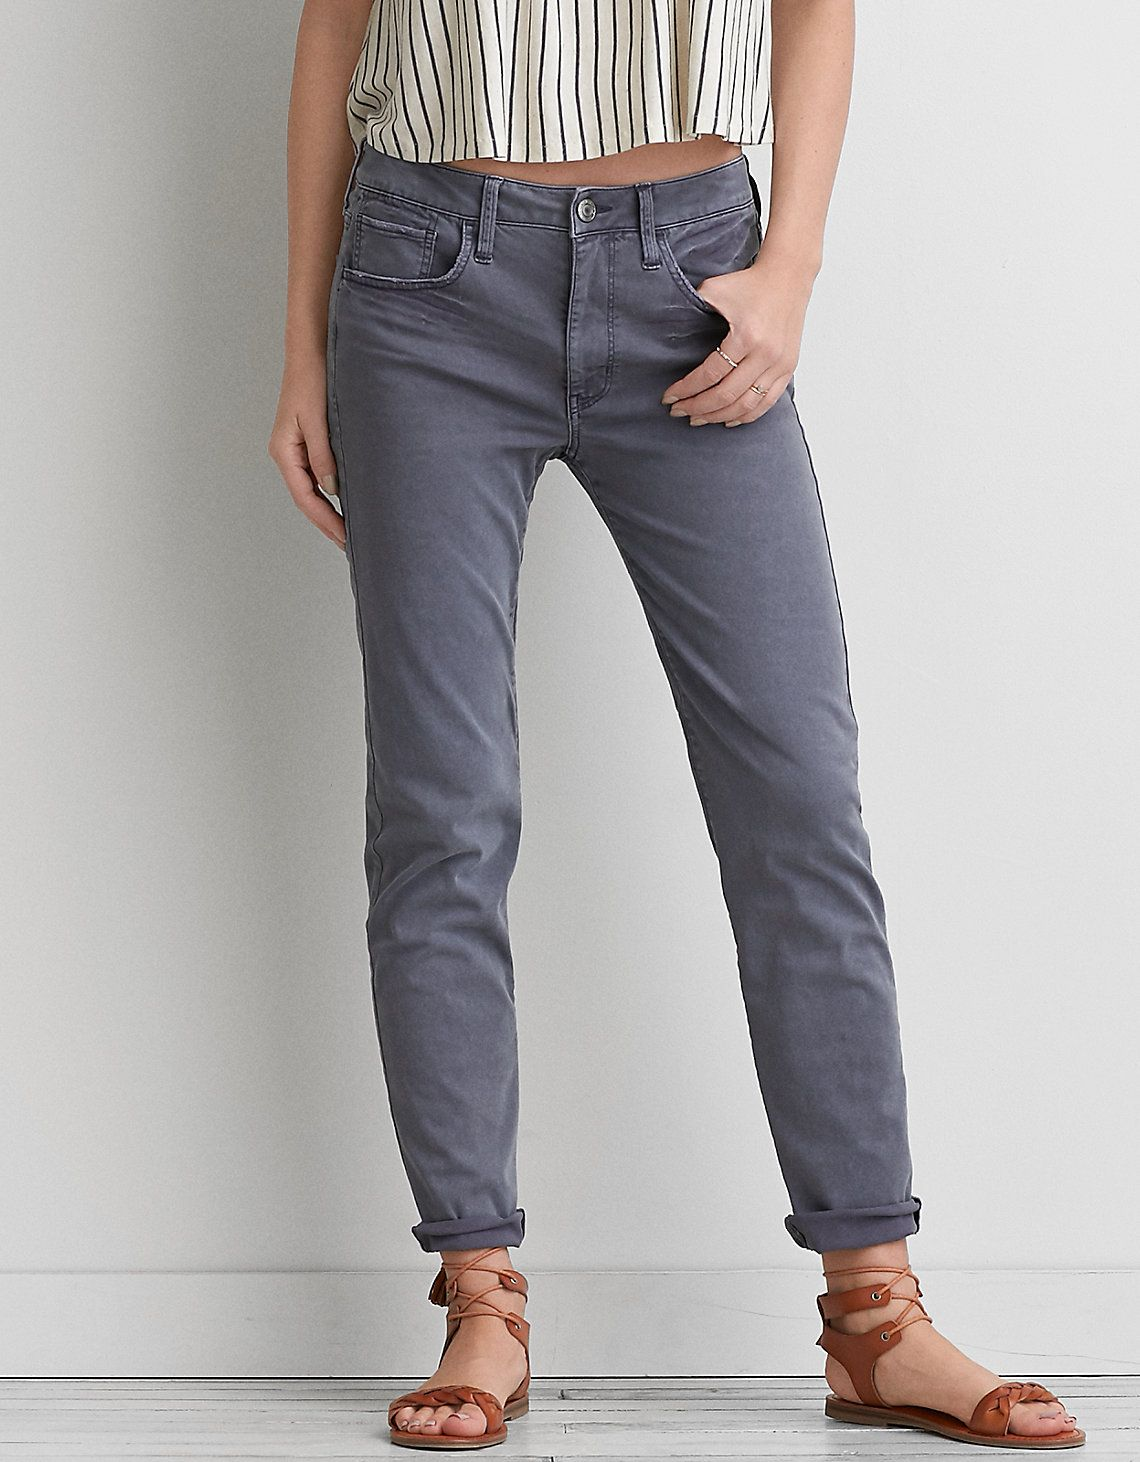 3f552793bd American Eagle Outfitters. Tom Girl pant in smoked gray | Style ...